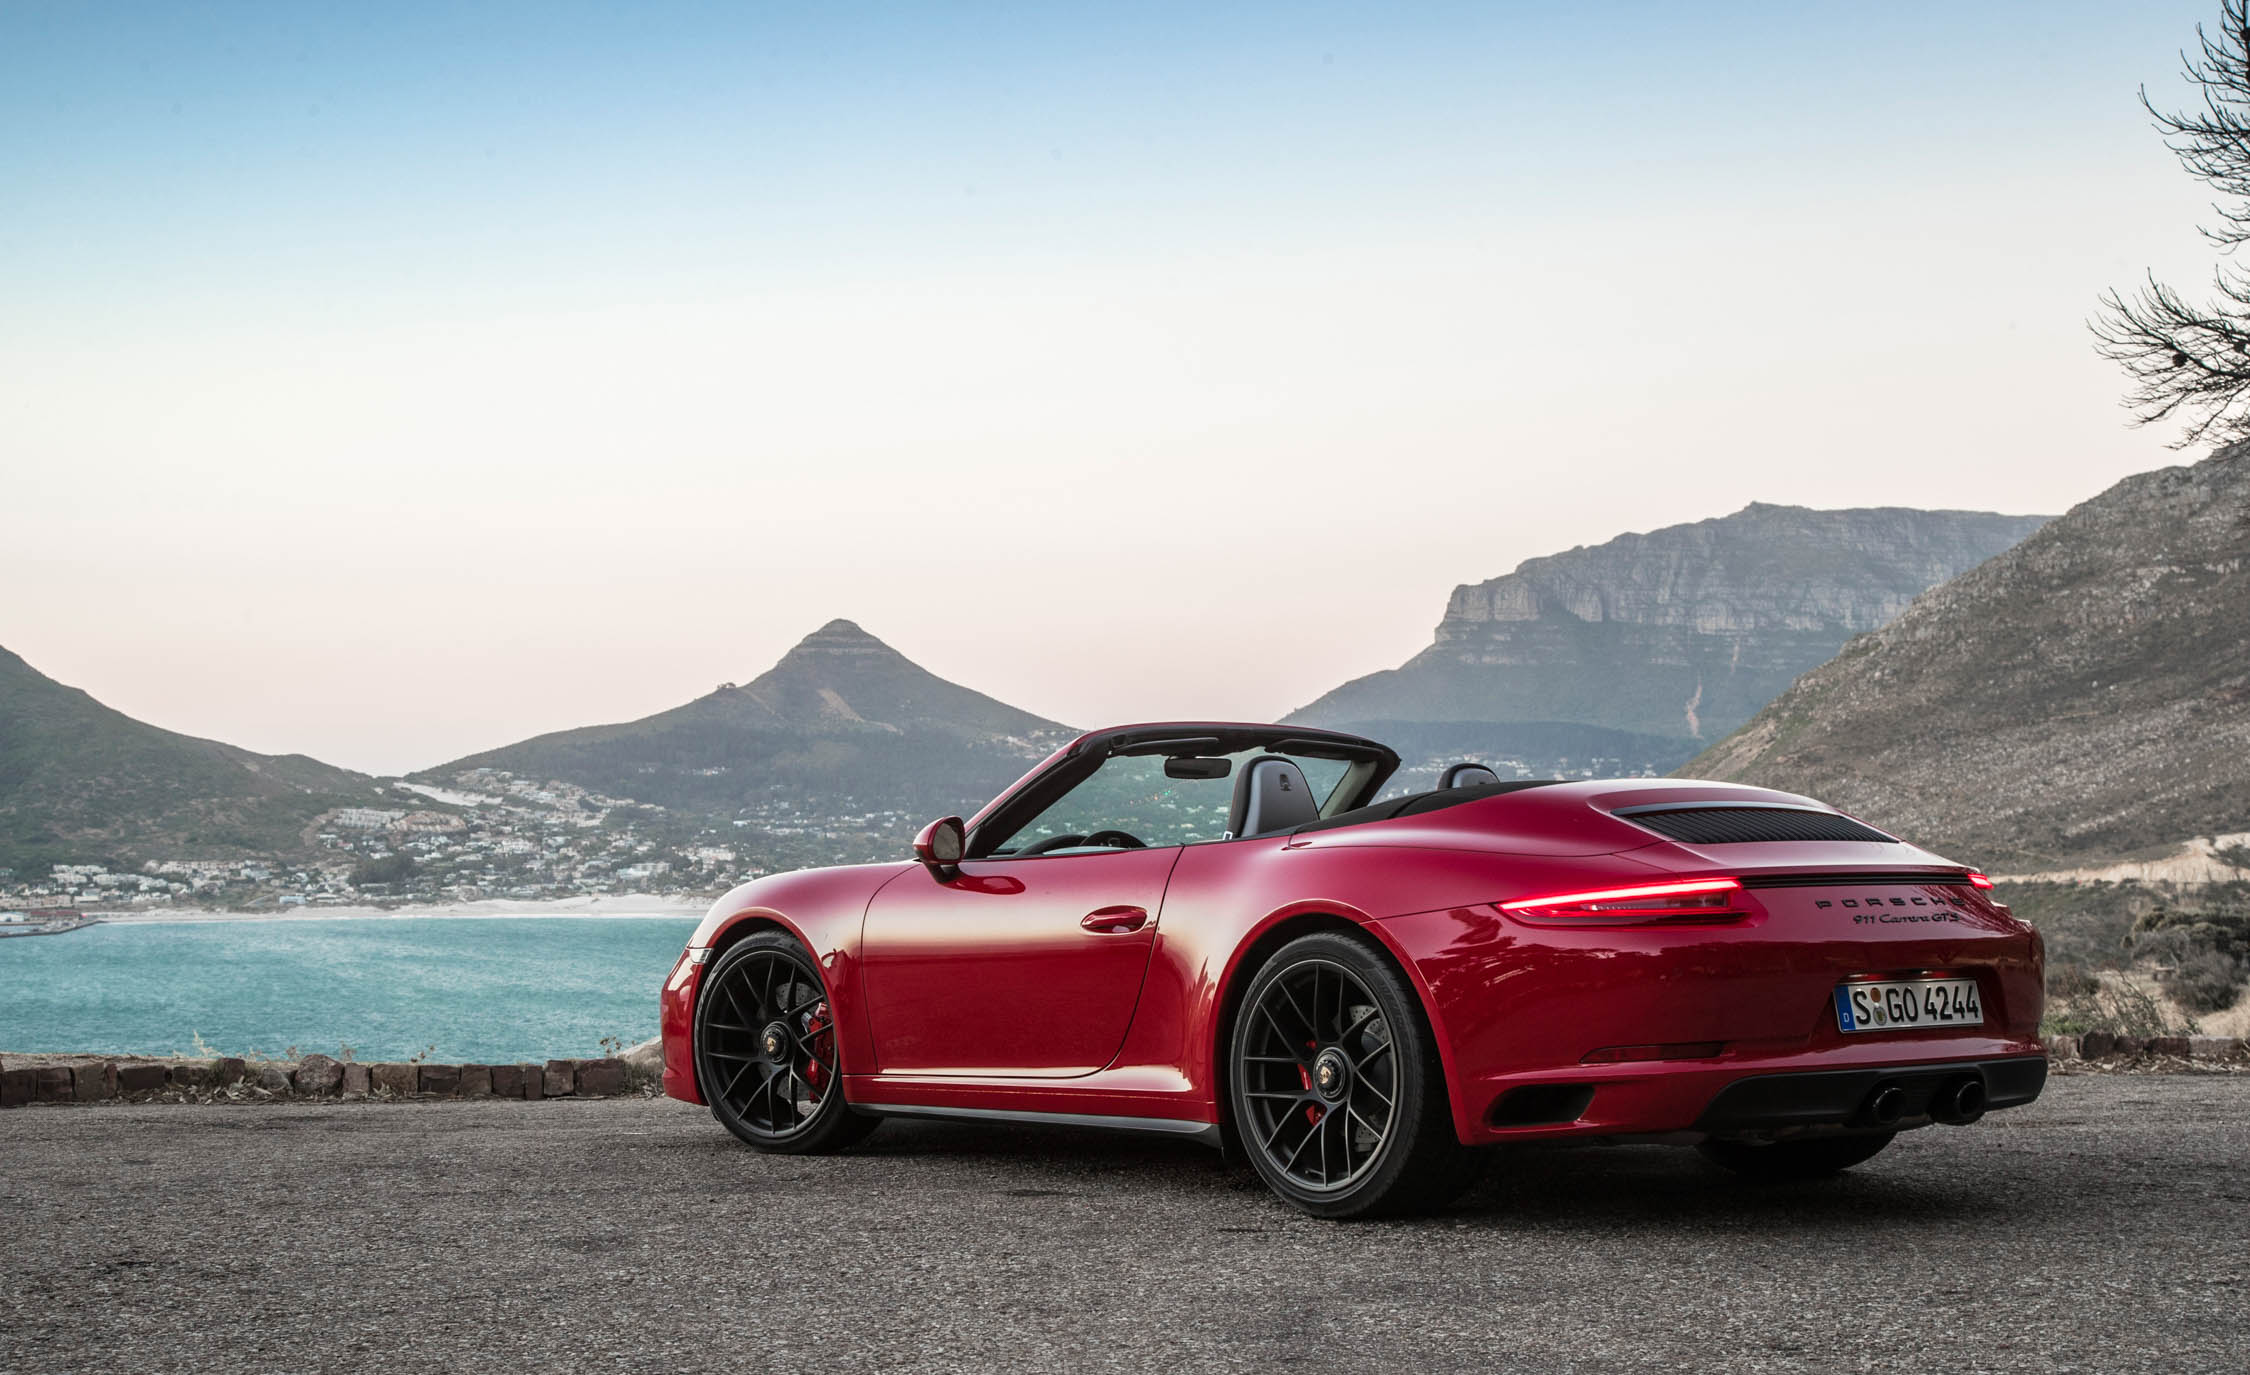 2017 Porsche 911 Carrera GTS Cabriolet Exterior Rear And Side (Photo 33 of 97)